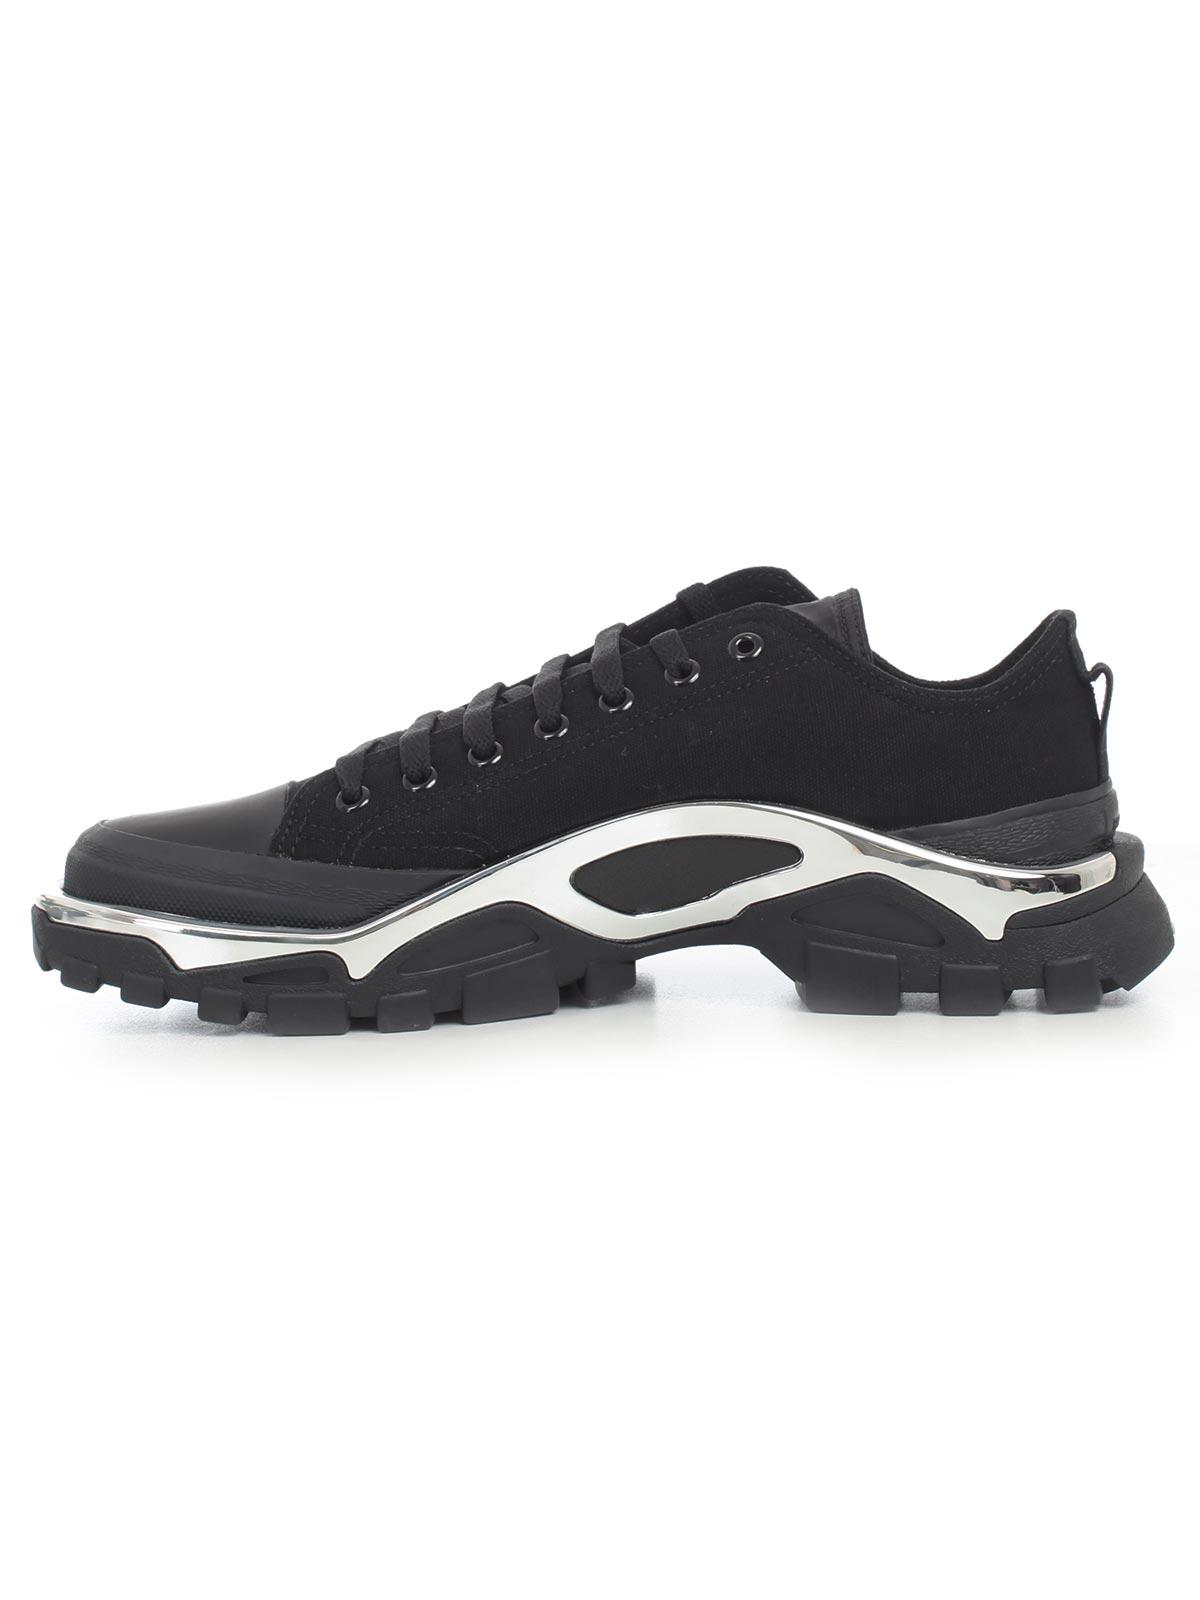 new arrival 92af4 ae07d Lyst - Adidas By Raf Simons Scarpa Detroit Runner in Black f